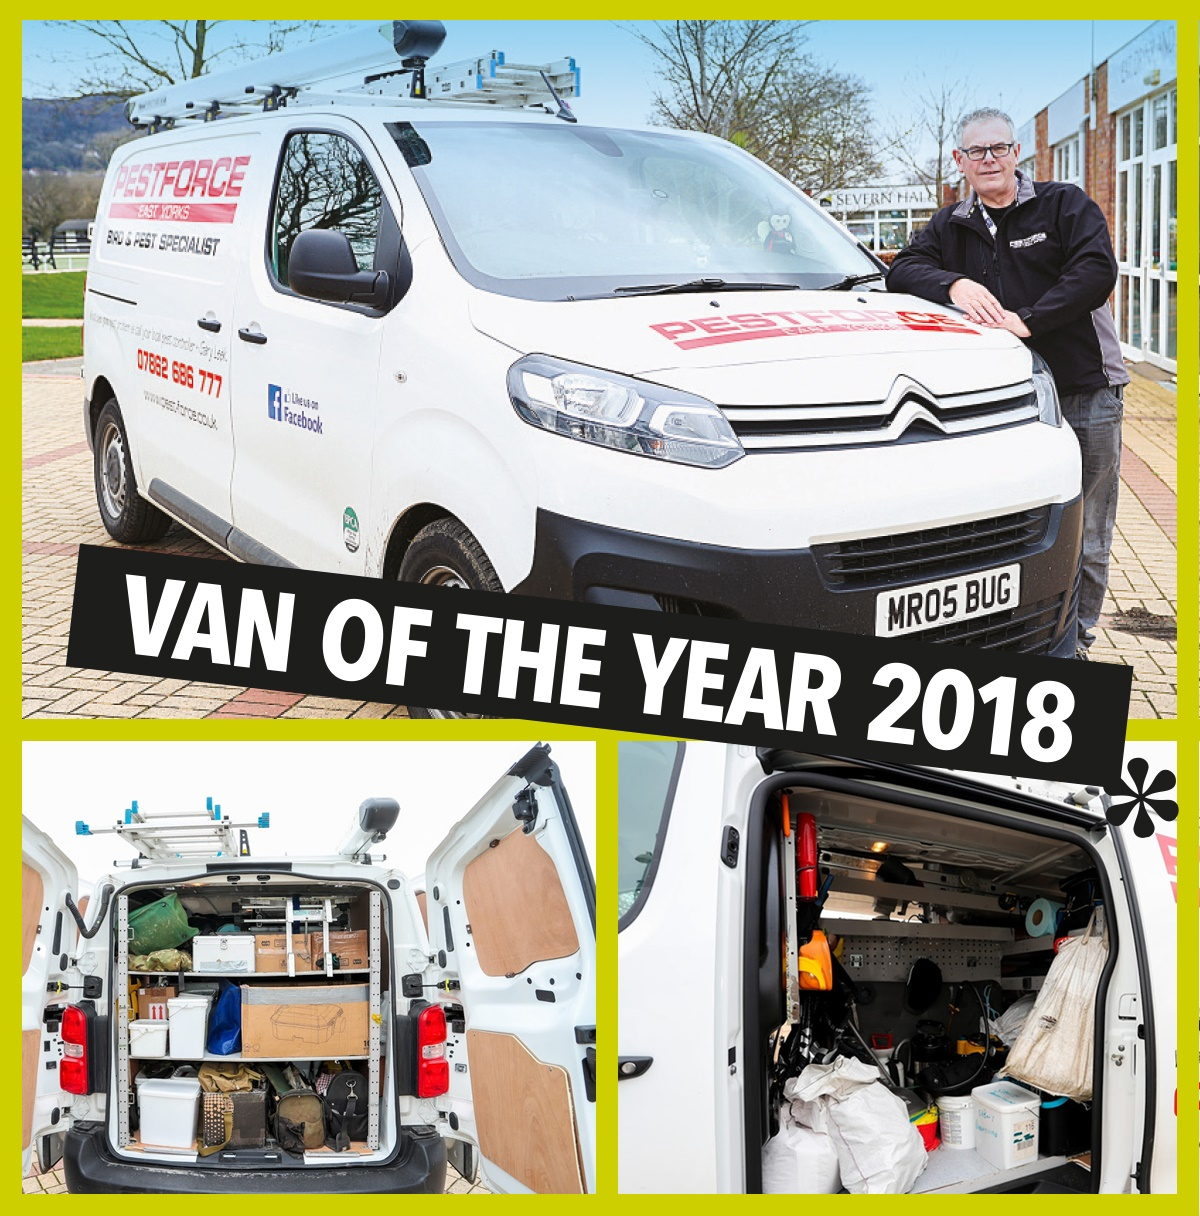 Pest control van of the year 2018